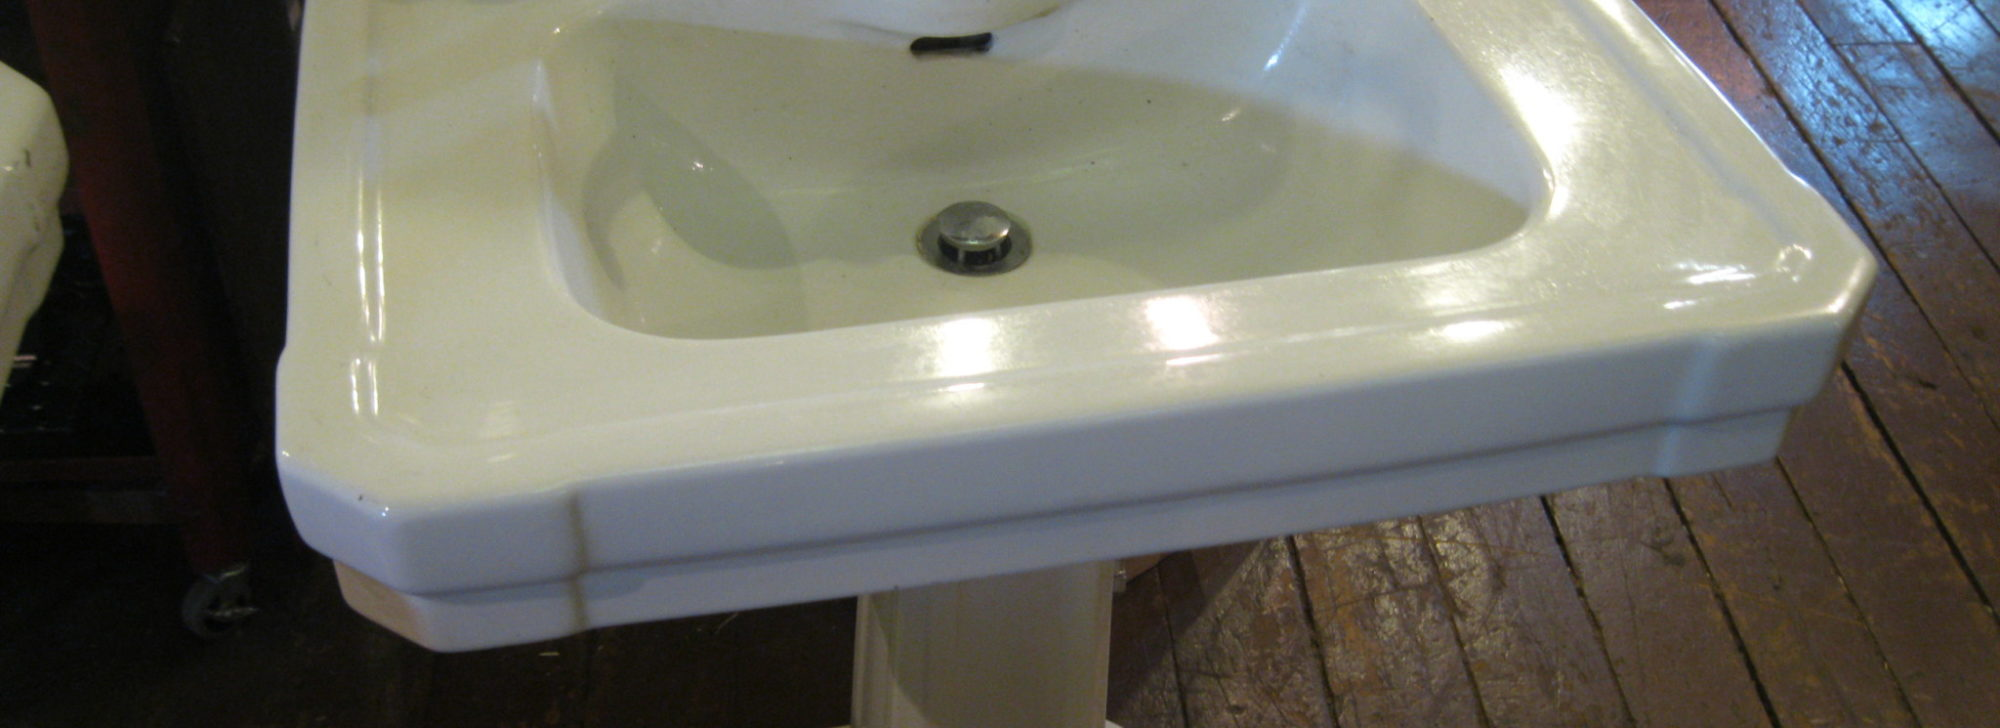 American Standard pedestal sinks 1928 - City Salvage | Minneapolis ...